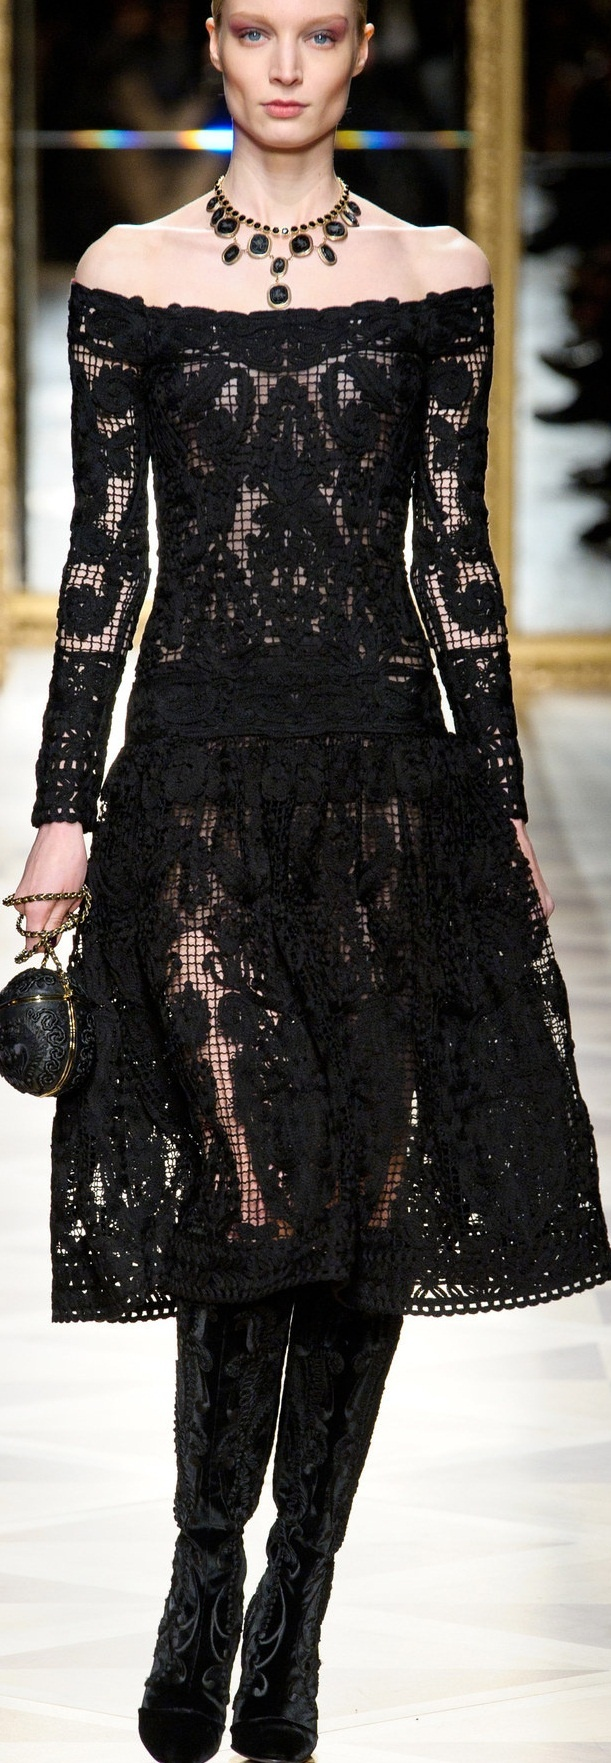 Salvatore Ferragamo 2012-13CROCHET AND KNIT INSPIRATION: http://pinterest.com/gigibrazil/crochet-and-knitting-lovers/